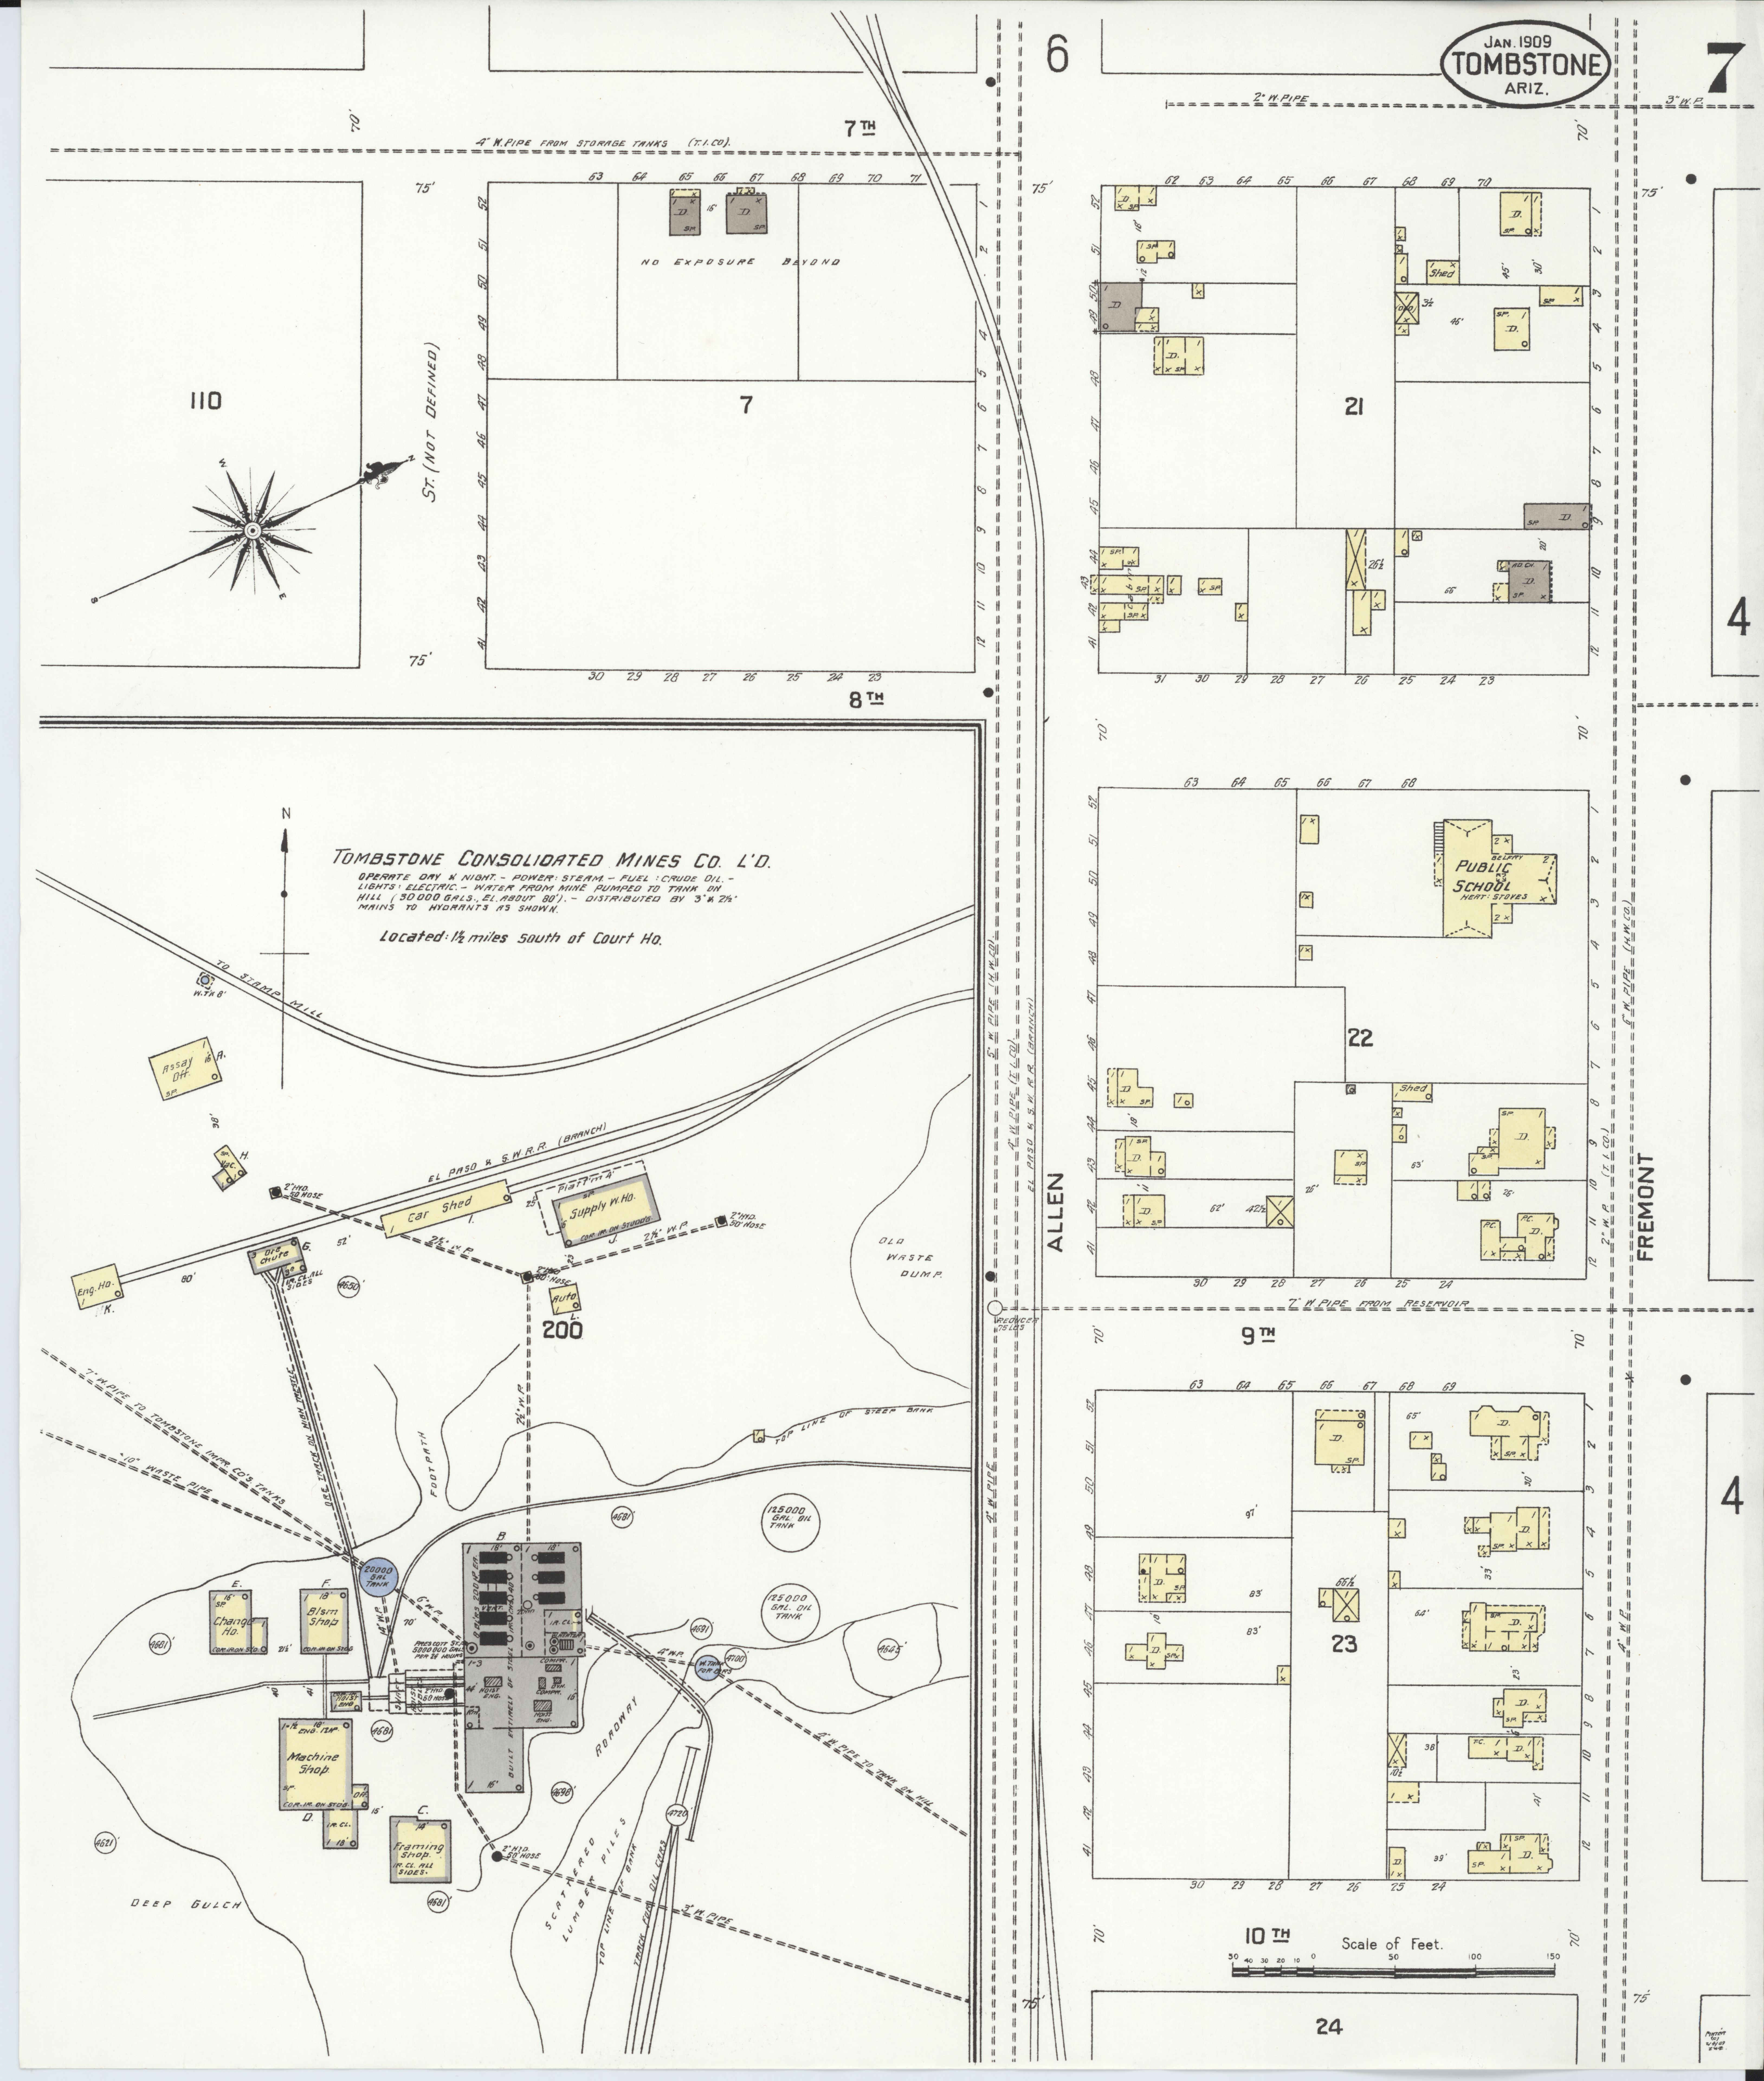 File:Sanborn Fire Insurance Map from Tombstone, Cochise